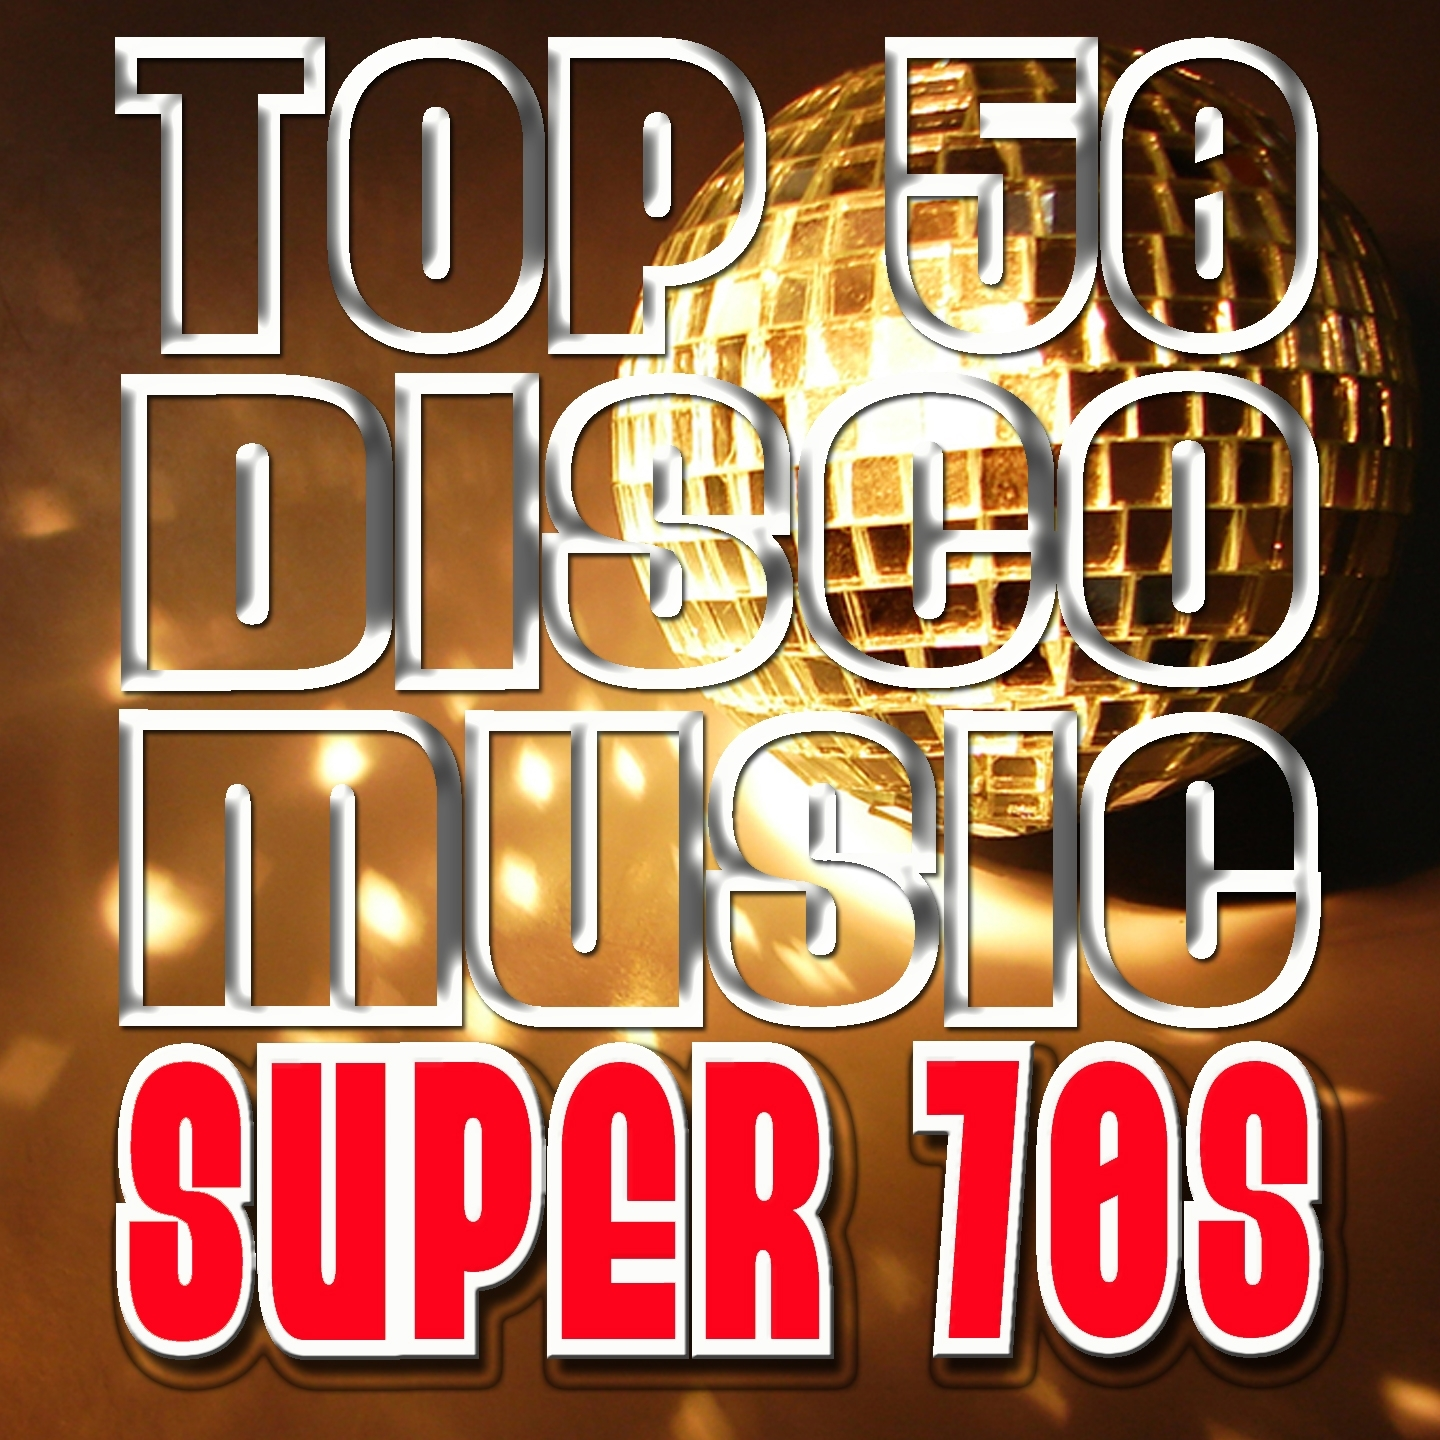 Top 50 Disco Music: Super 70s